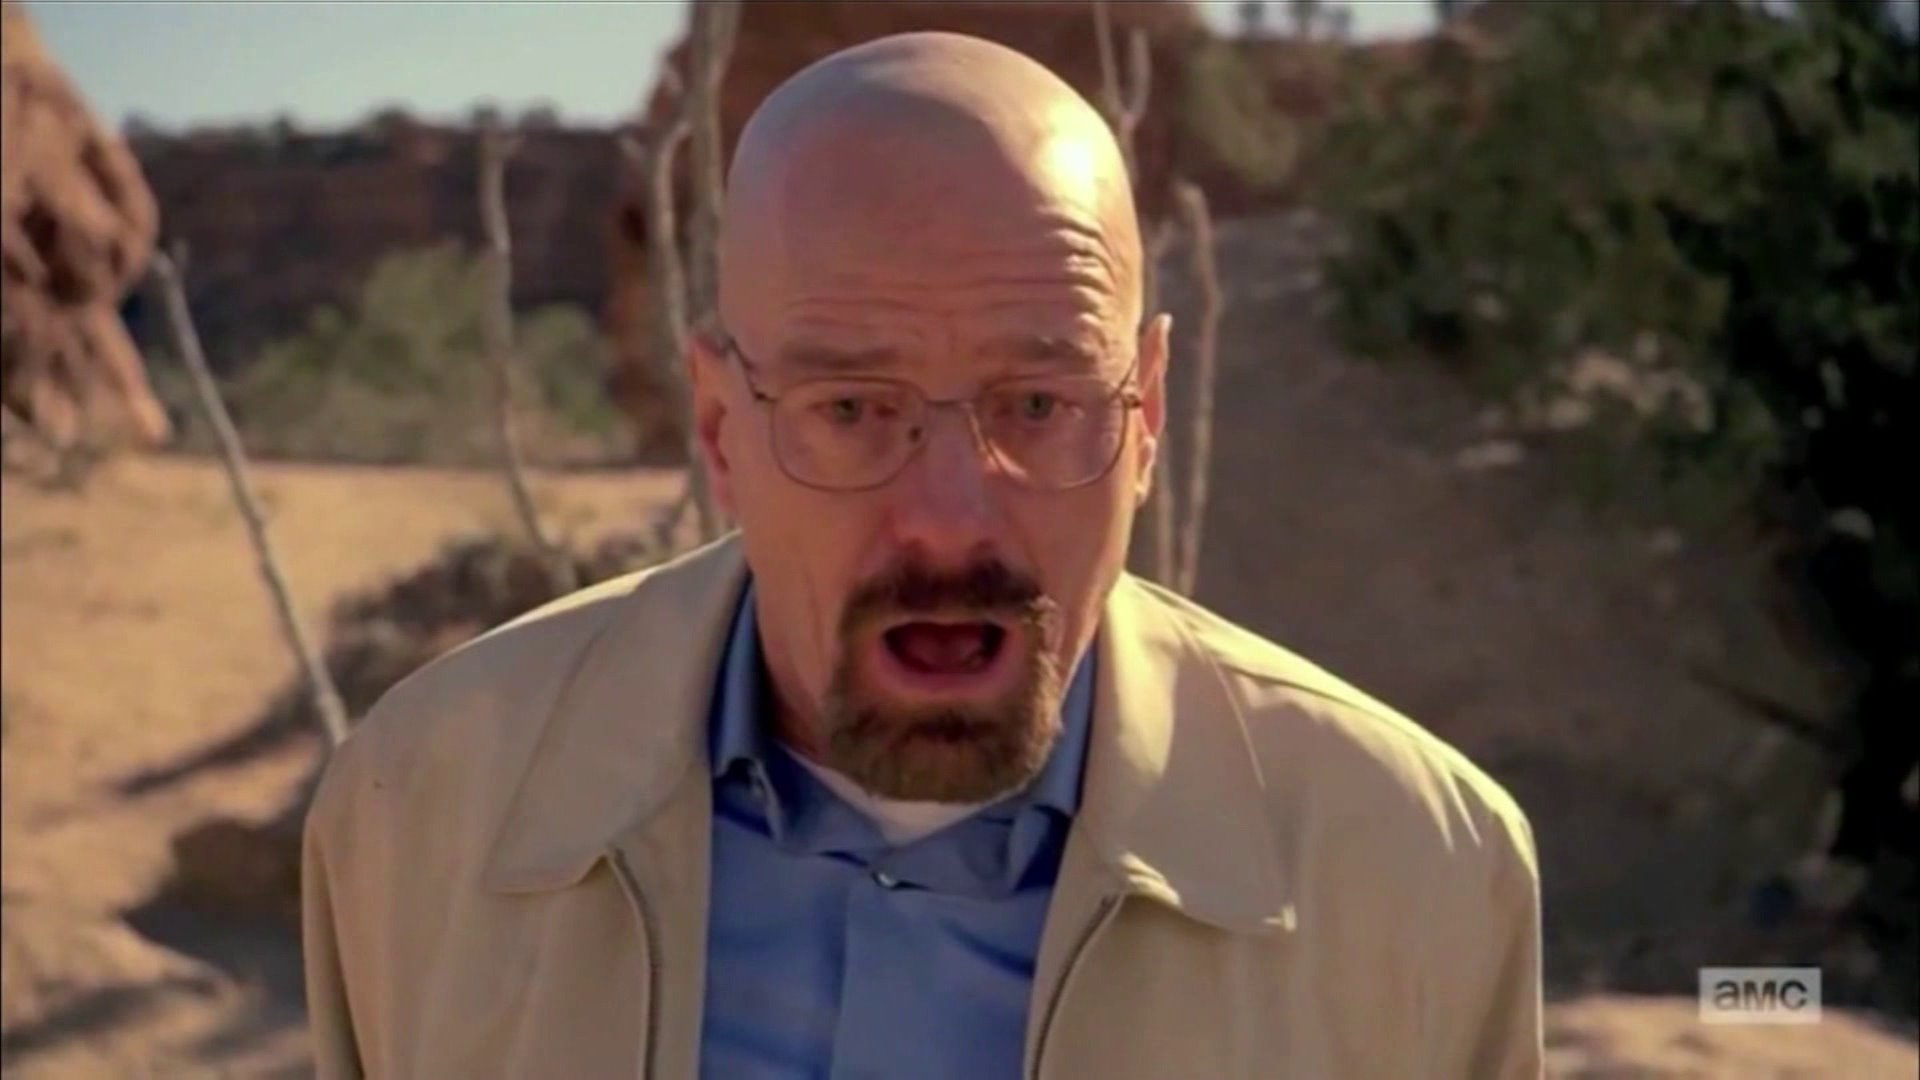 A 'Breaking Bad' movie is in the works